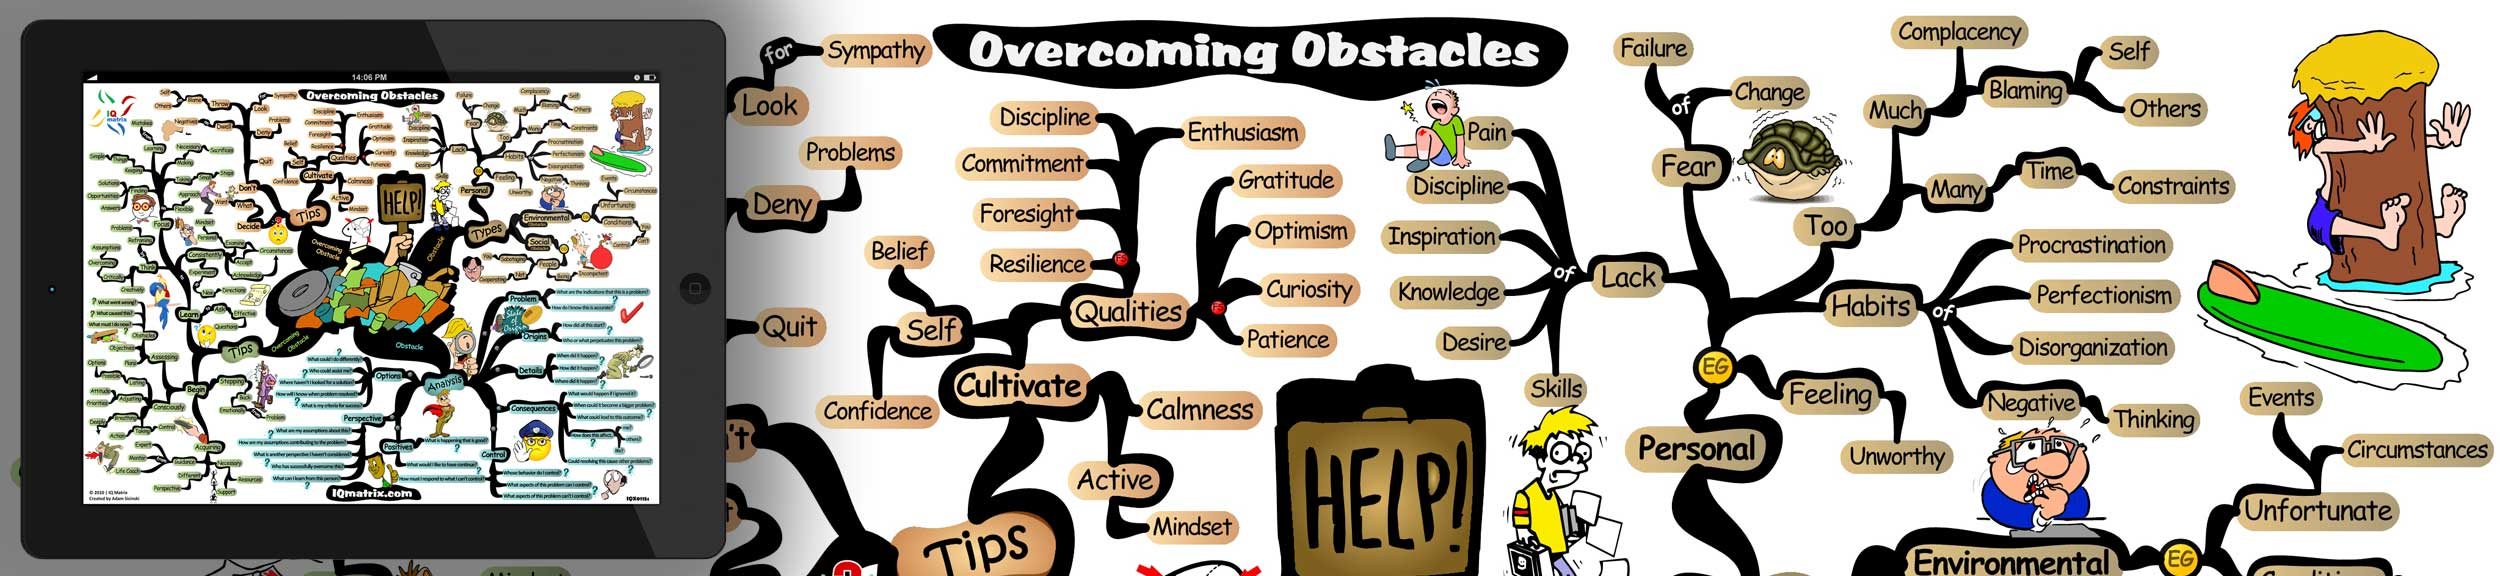 a comprehensive guide for how to overcome obstacles and setbacks